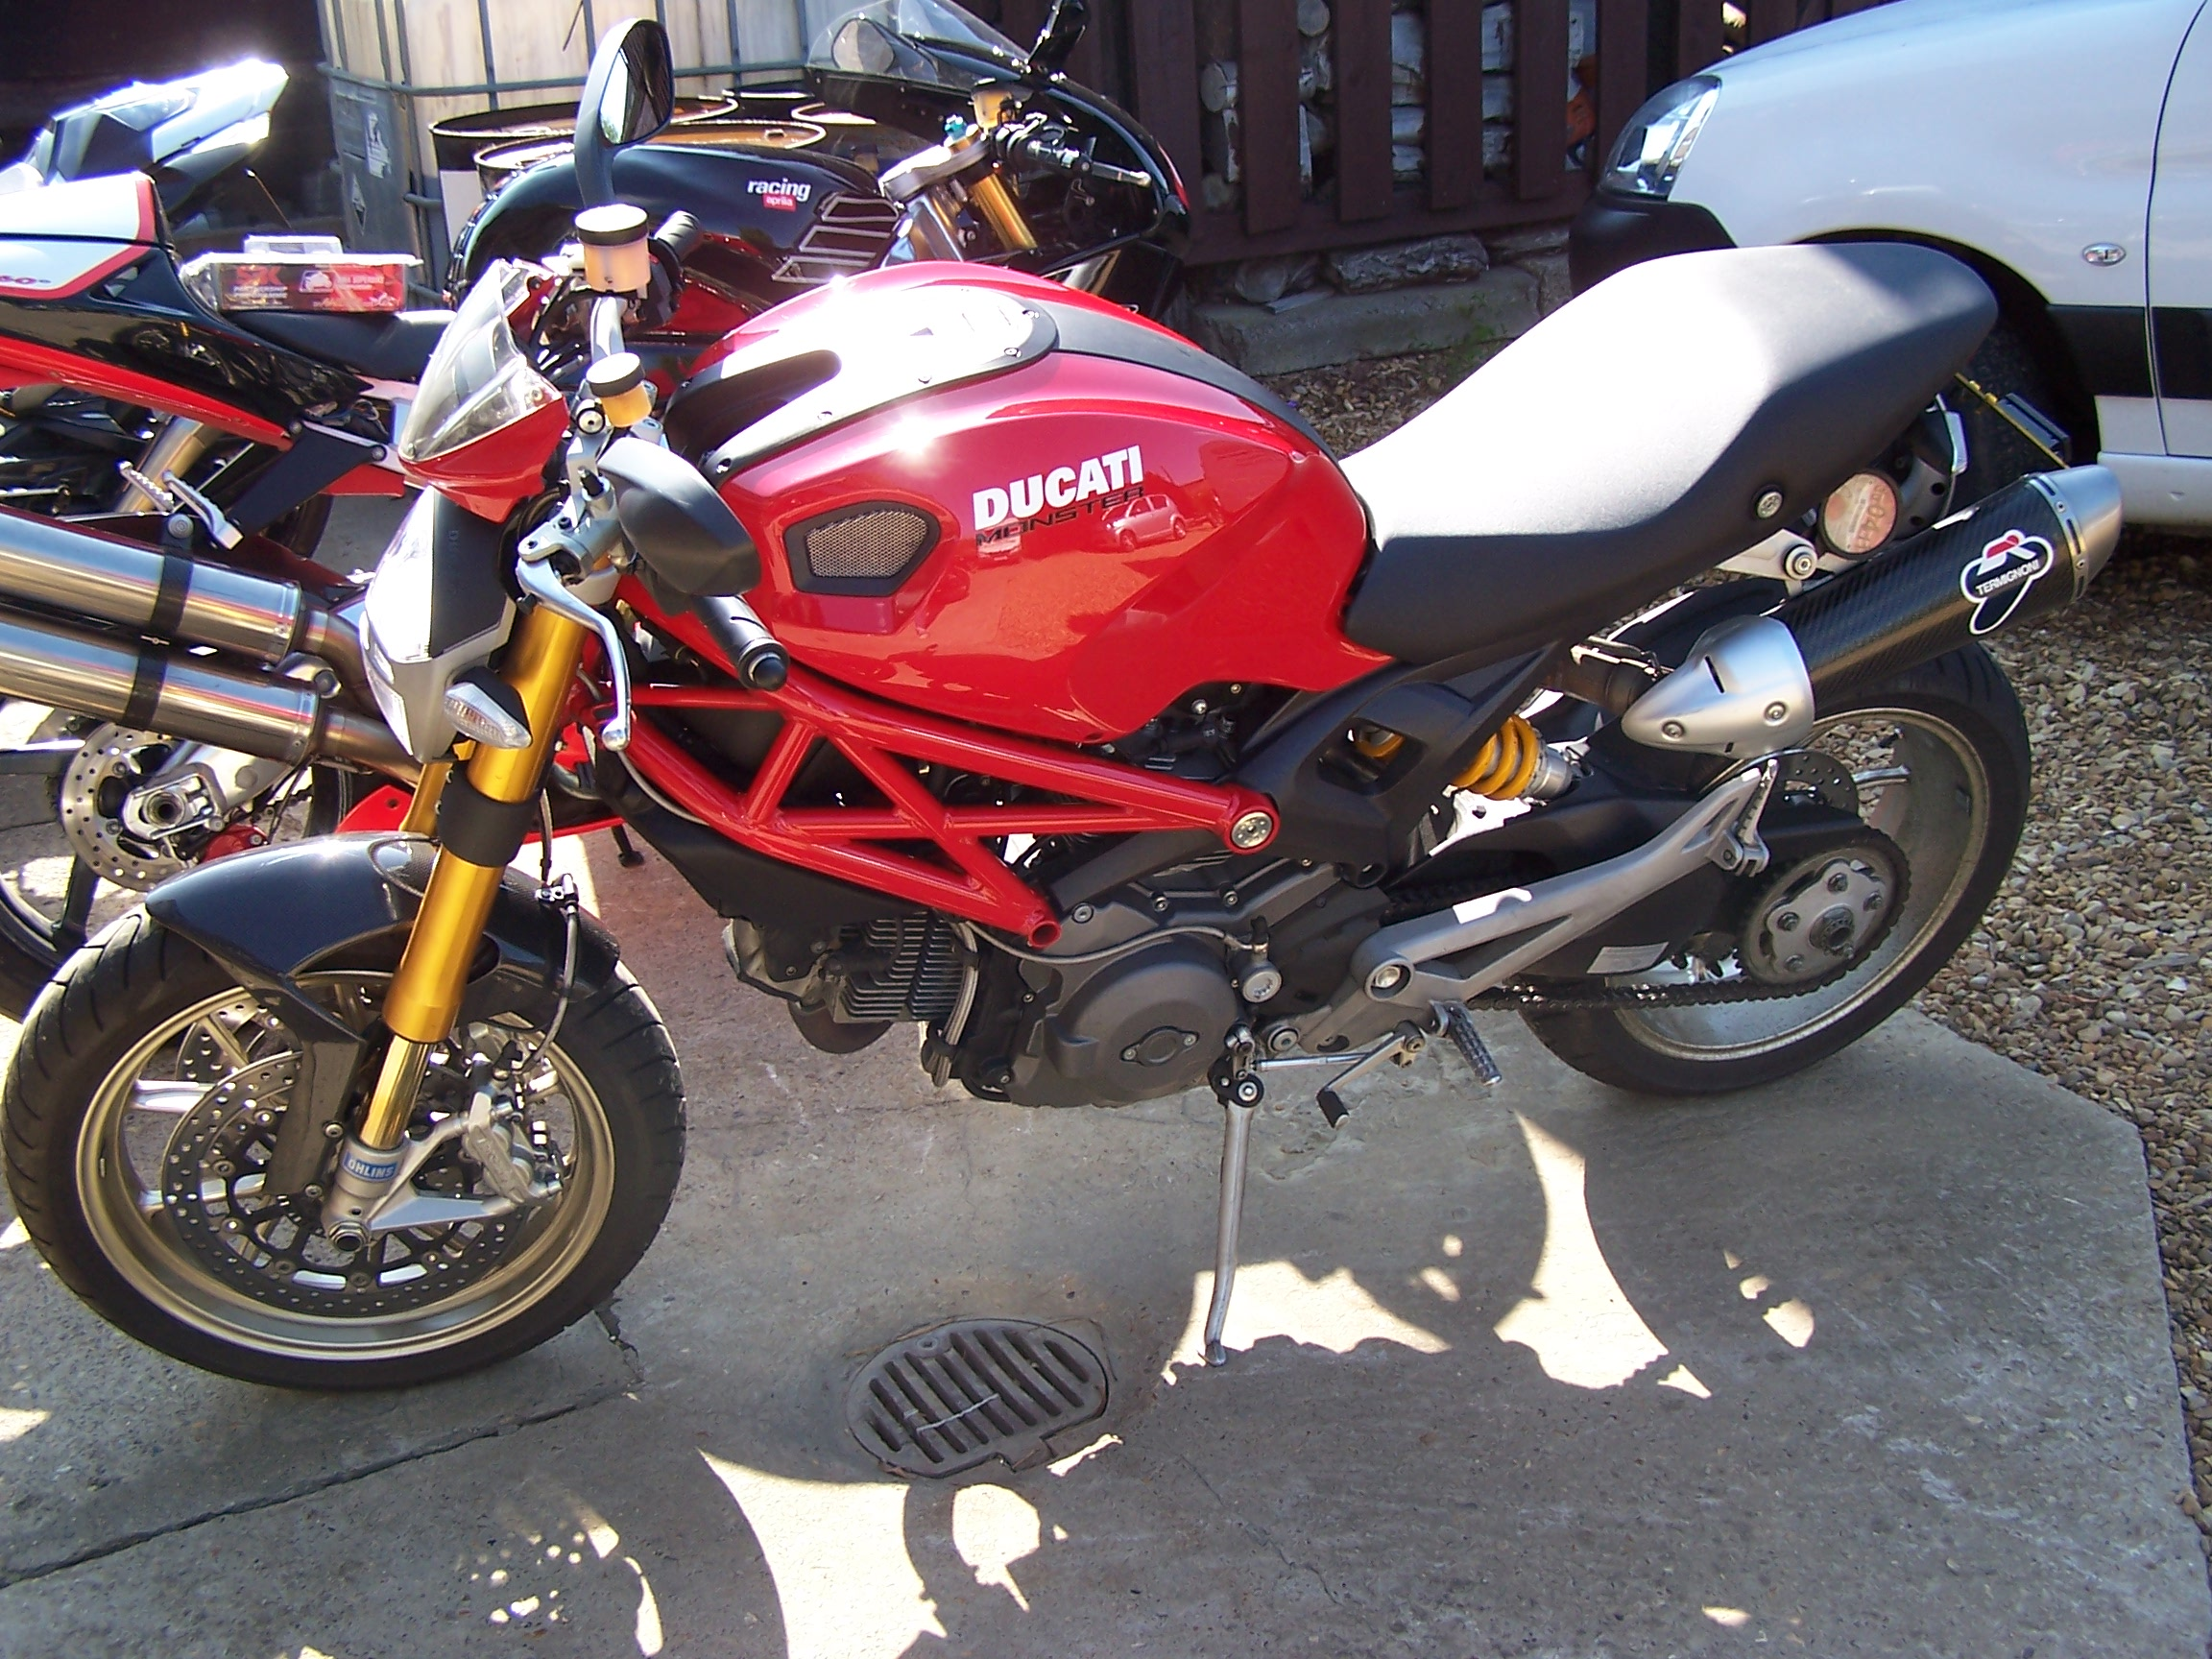 Ducati Monster 1100 S 2010 images #79346